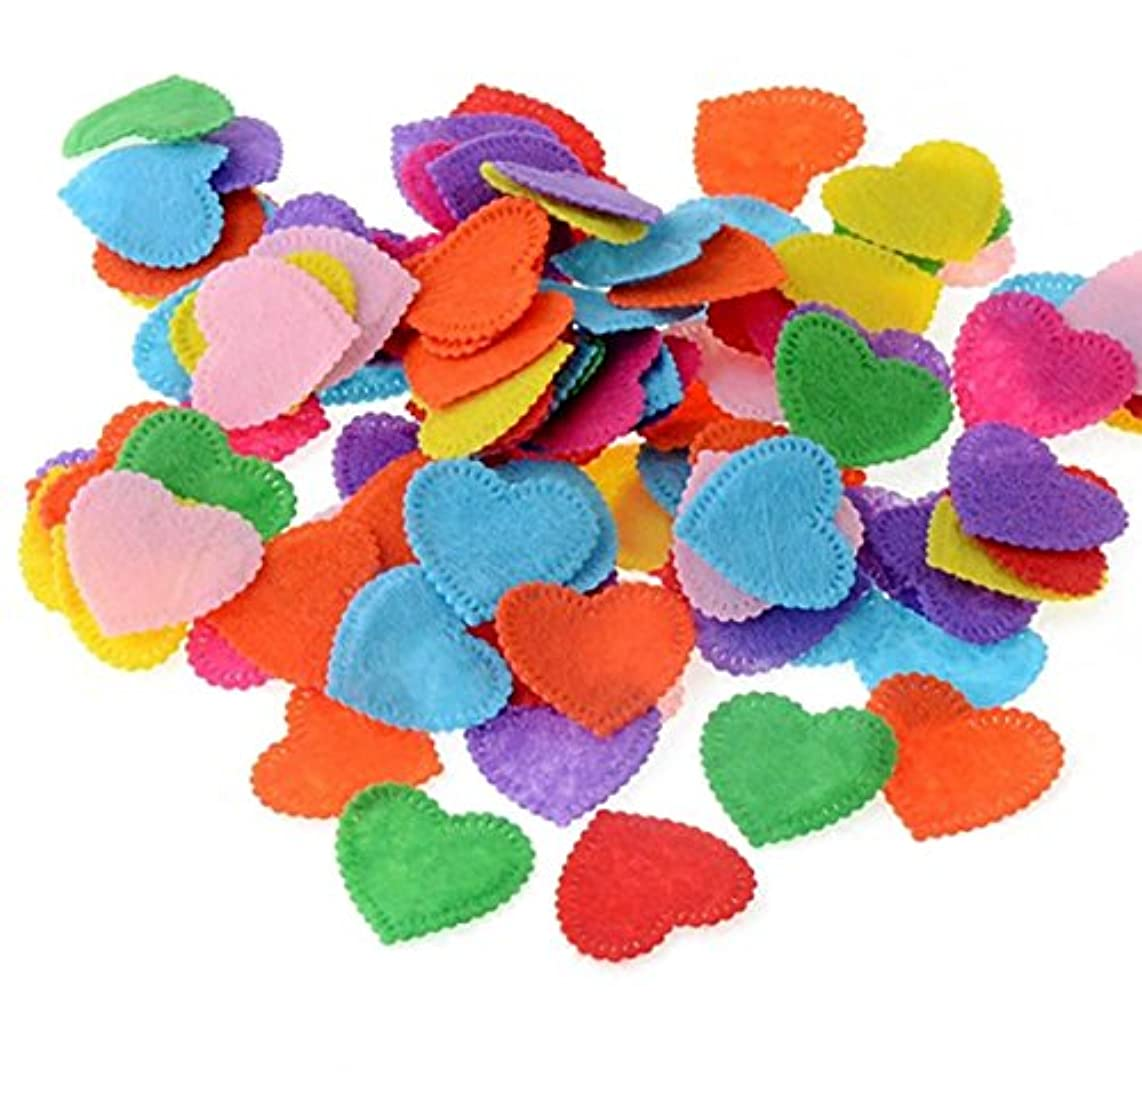 200PCS Assorted Shape Multicolor Fabric Embellishments Felt Pads Appliques for DIY Craft Decoration and Sewing Handcraft (Love shape)